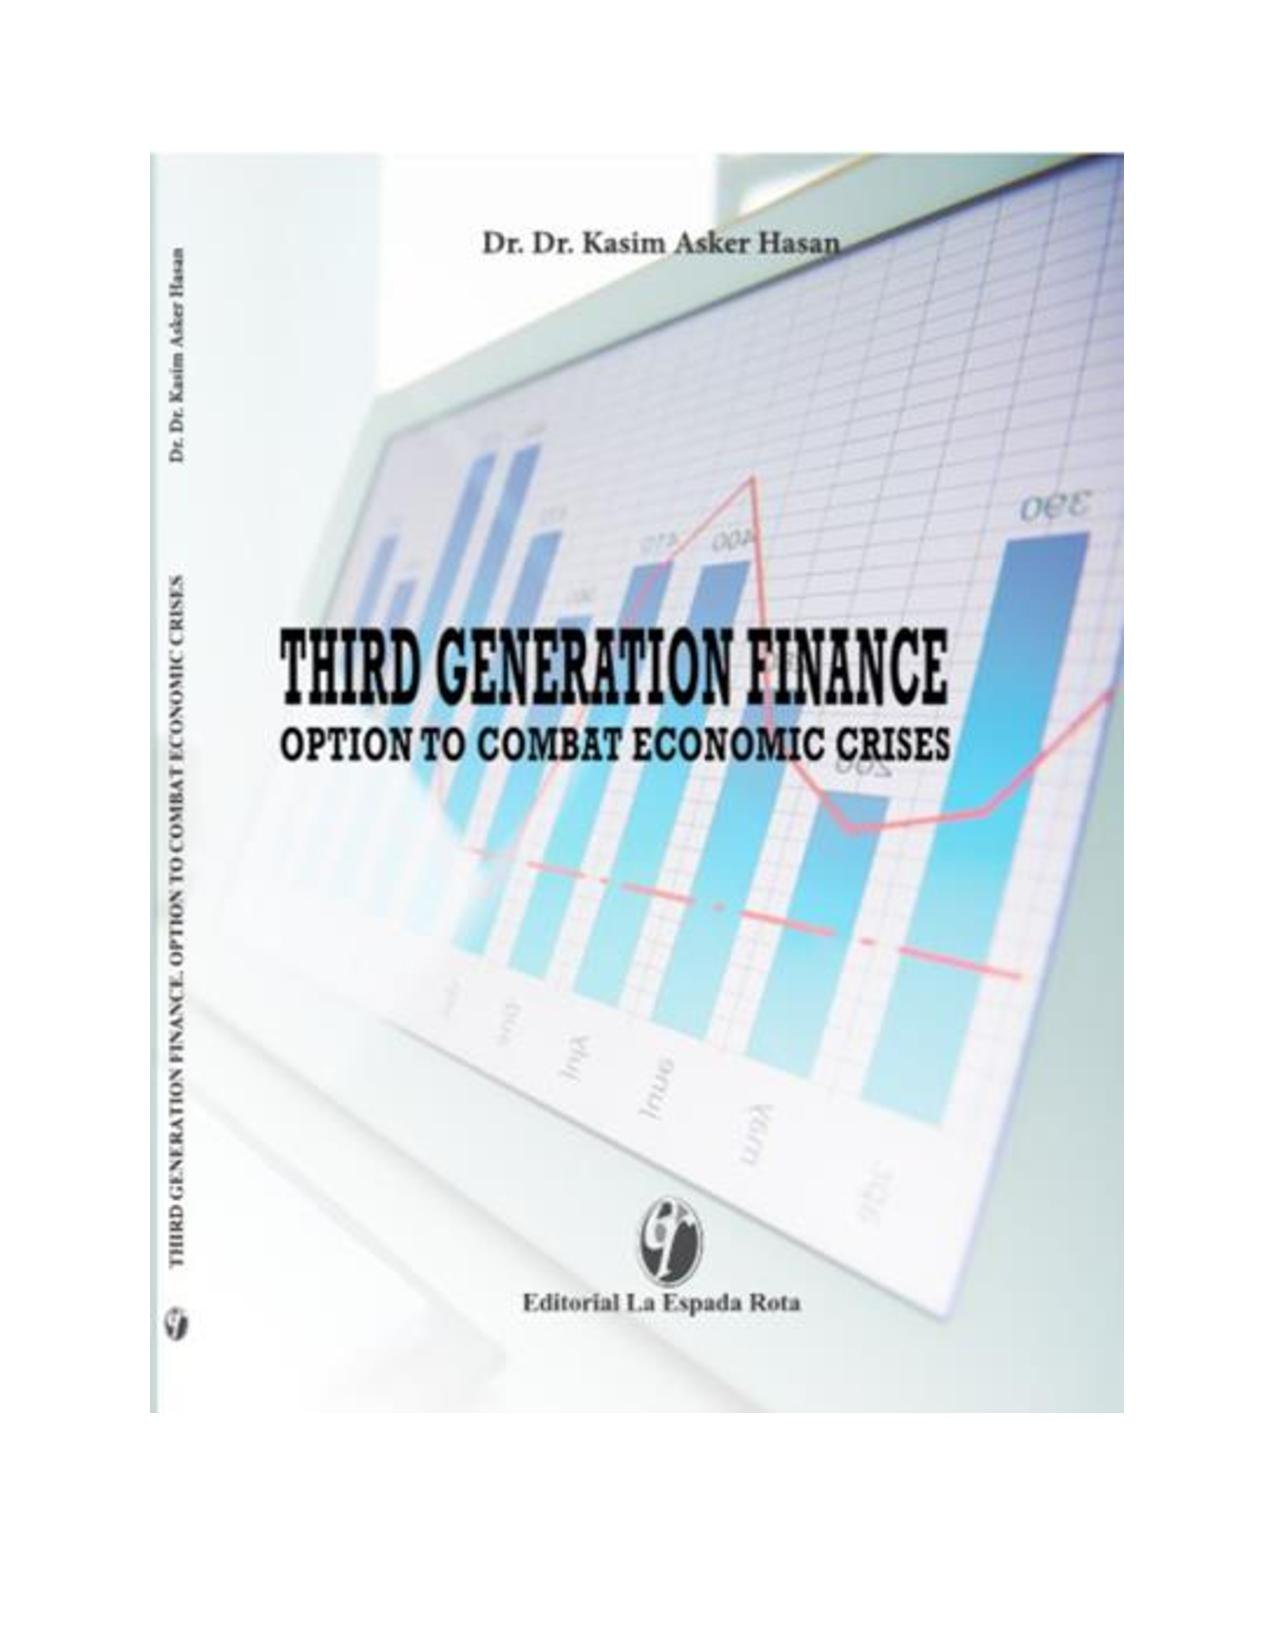 El libro»THIRD GENERATION FINANCES OPTION TO COMBAT THE ECONOMIC CRISES» del Embajador Kasim Asker Hasan ya está disponible en Amazon